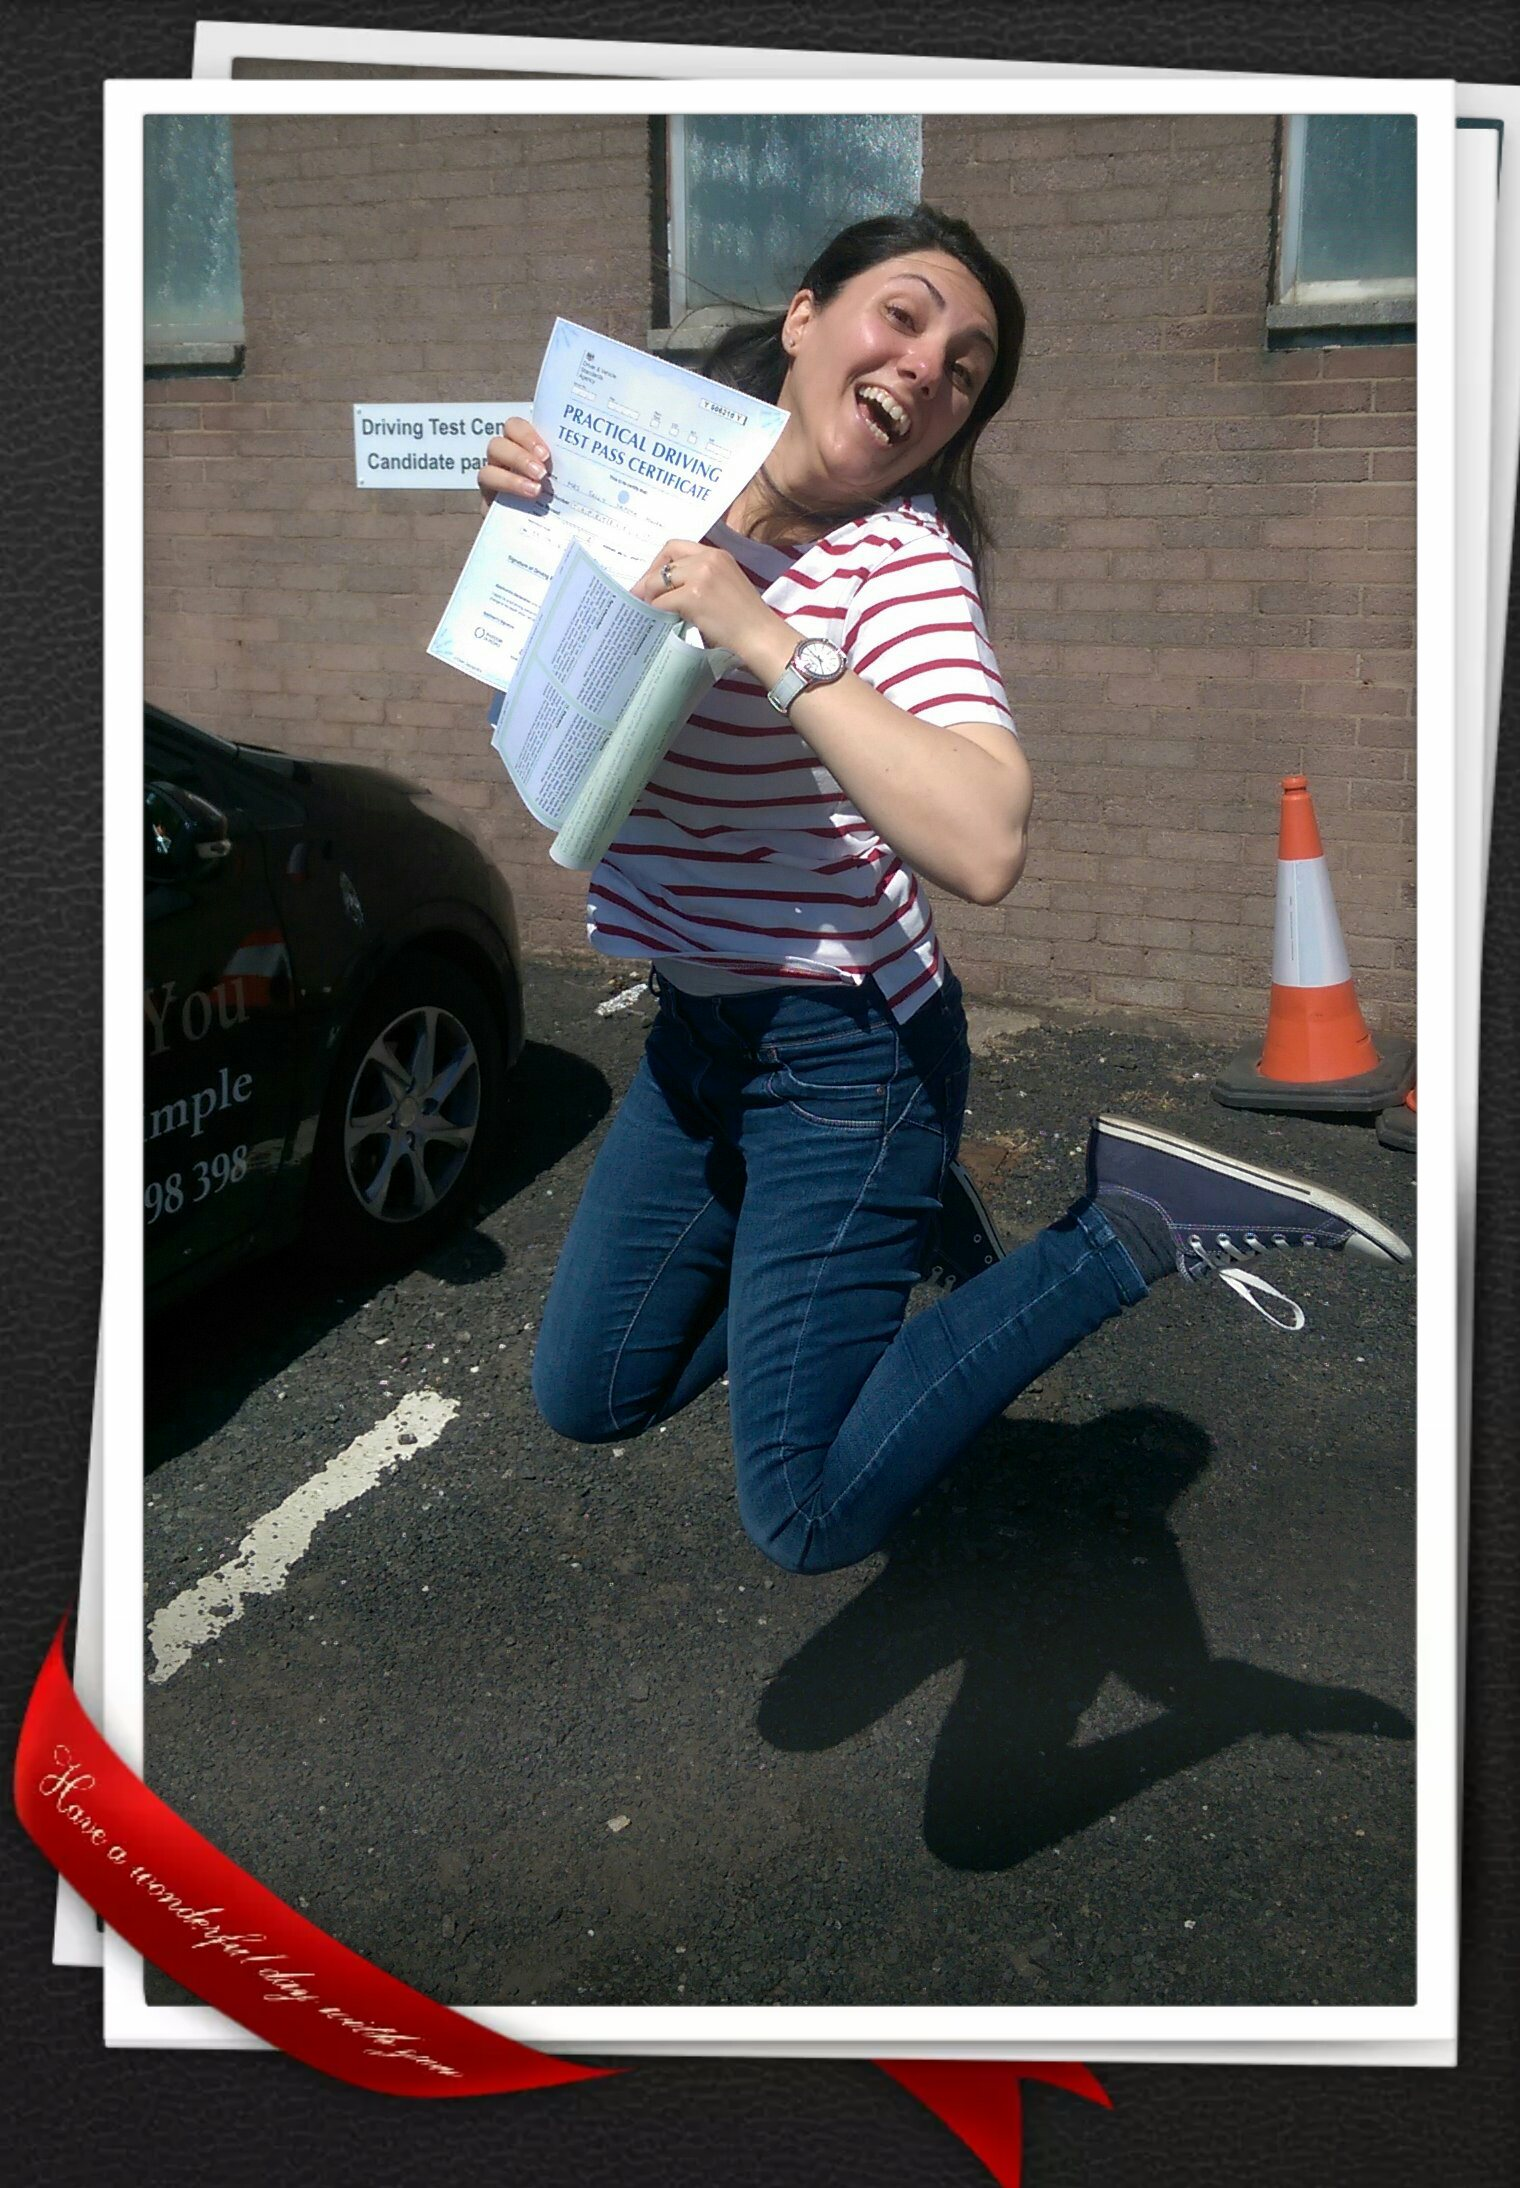 Sally passing her driving test at Paisley 2016